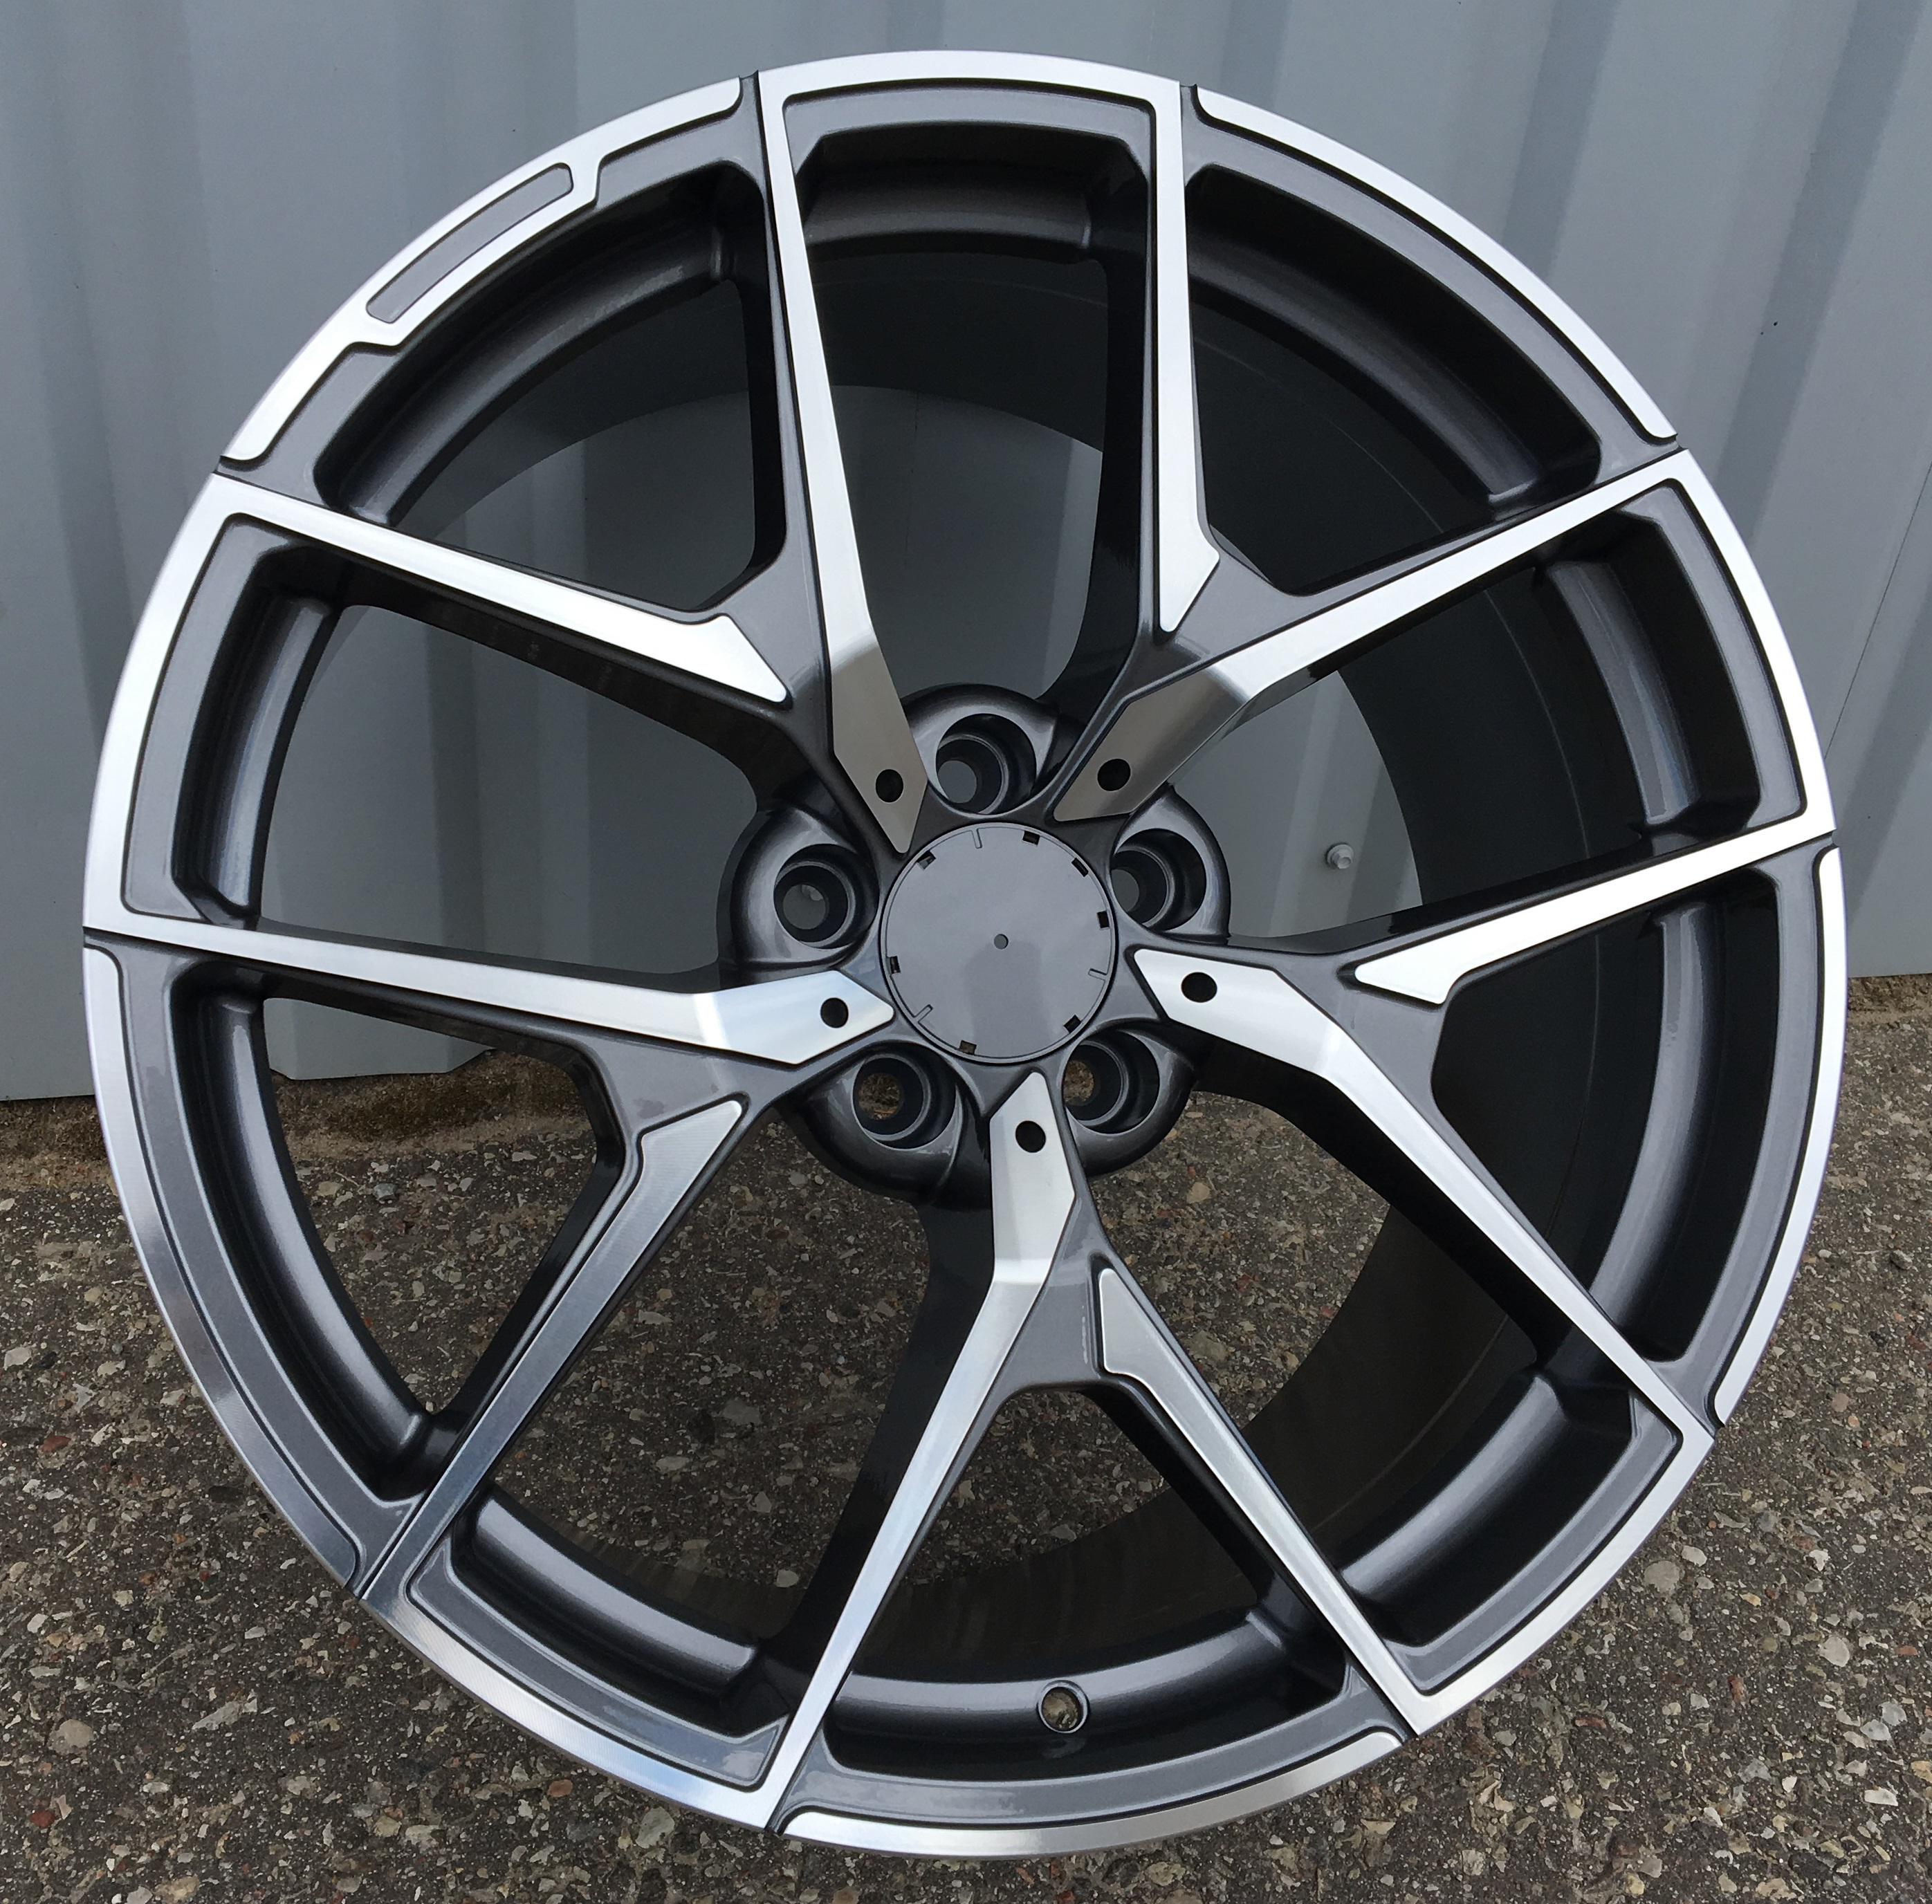 M17X8 5X112 ET40 66.56 XFE137 MG+Powder Coating RWR MER (+3eur) (K4)## 8x17 ET40 5x112